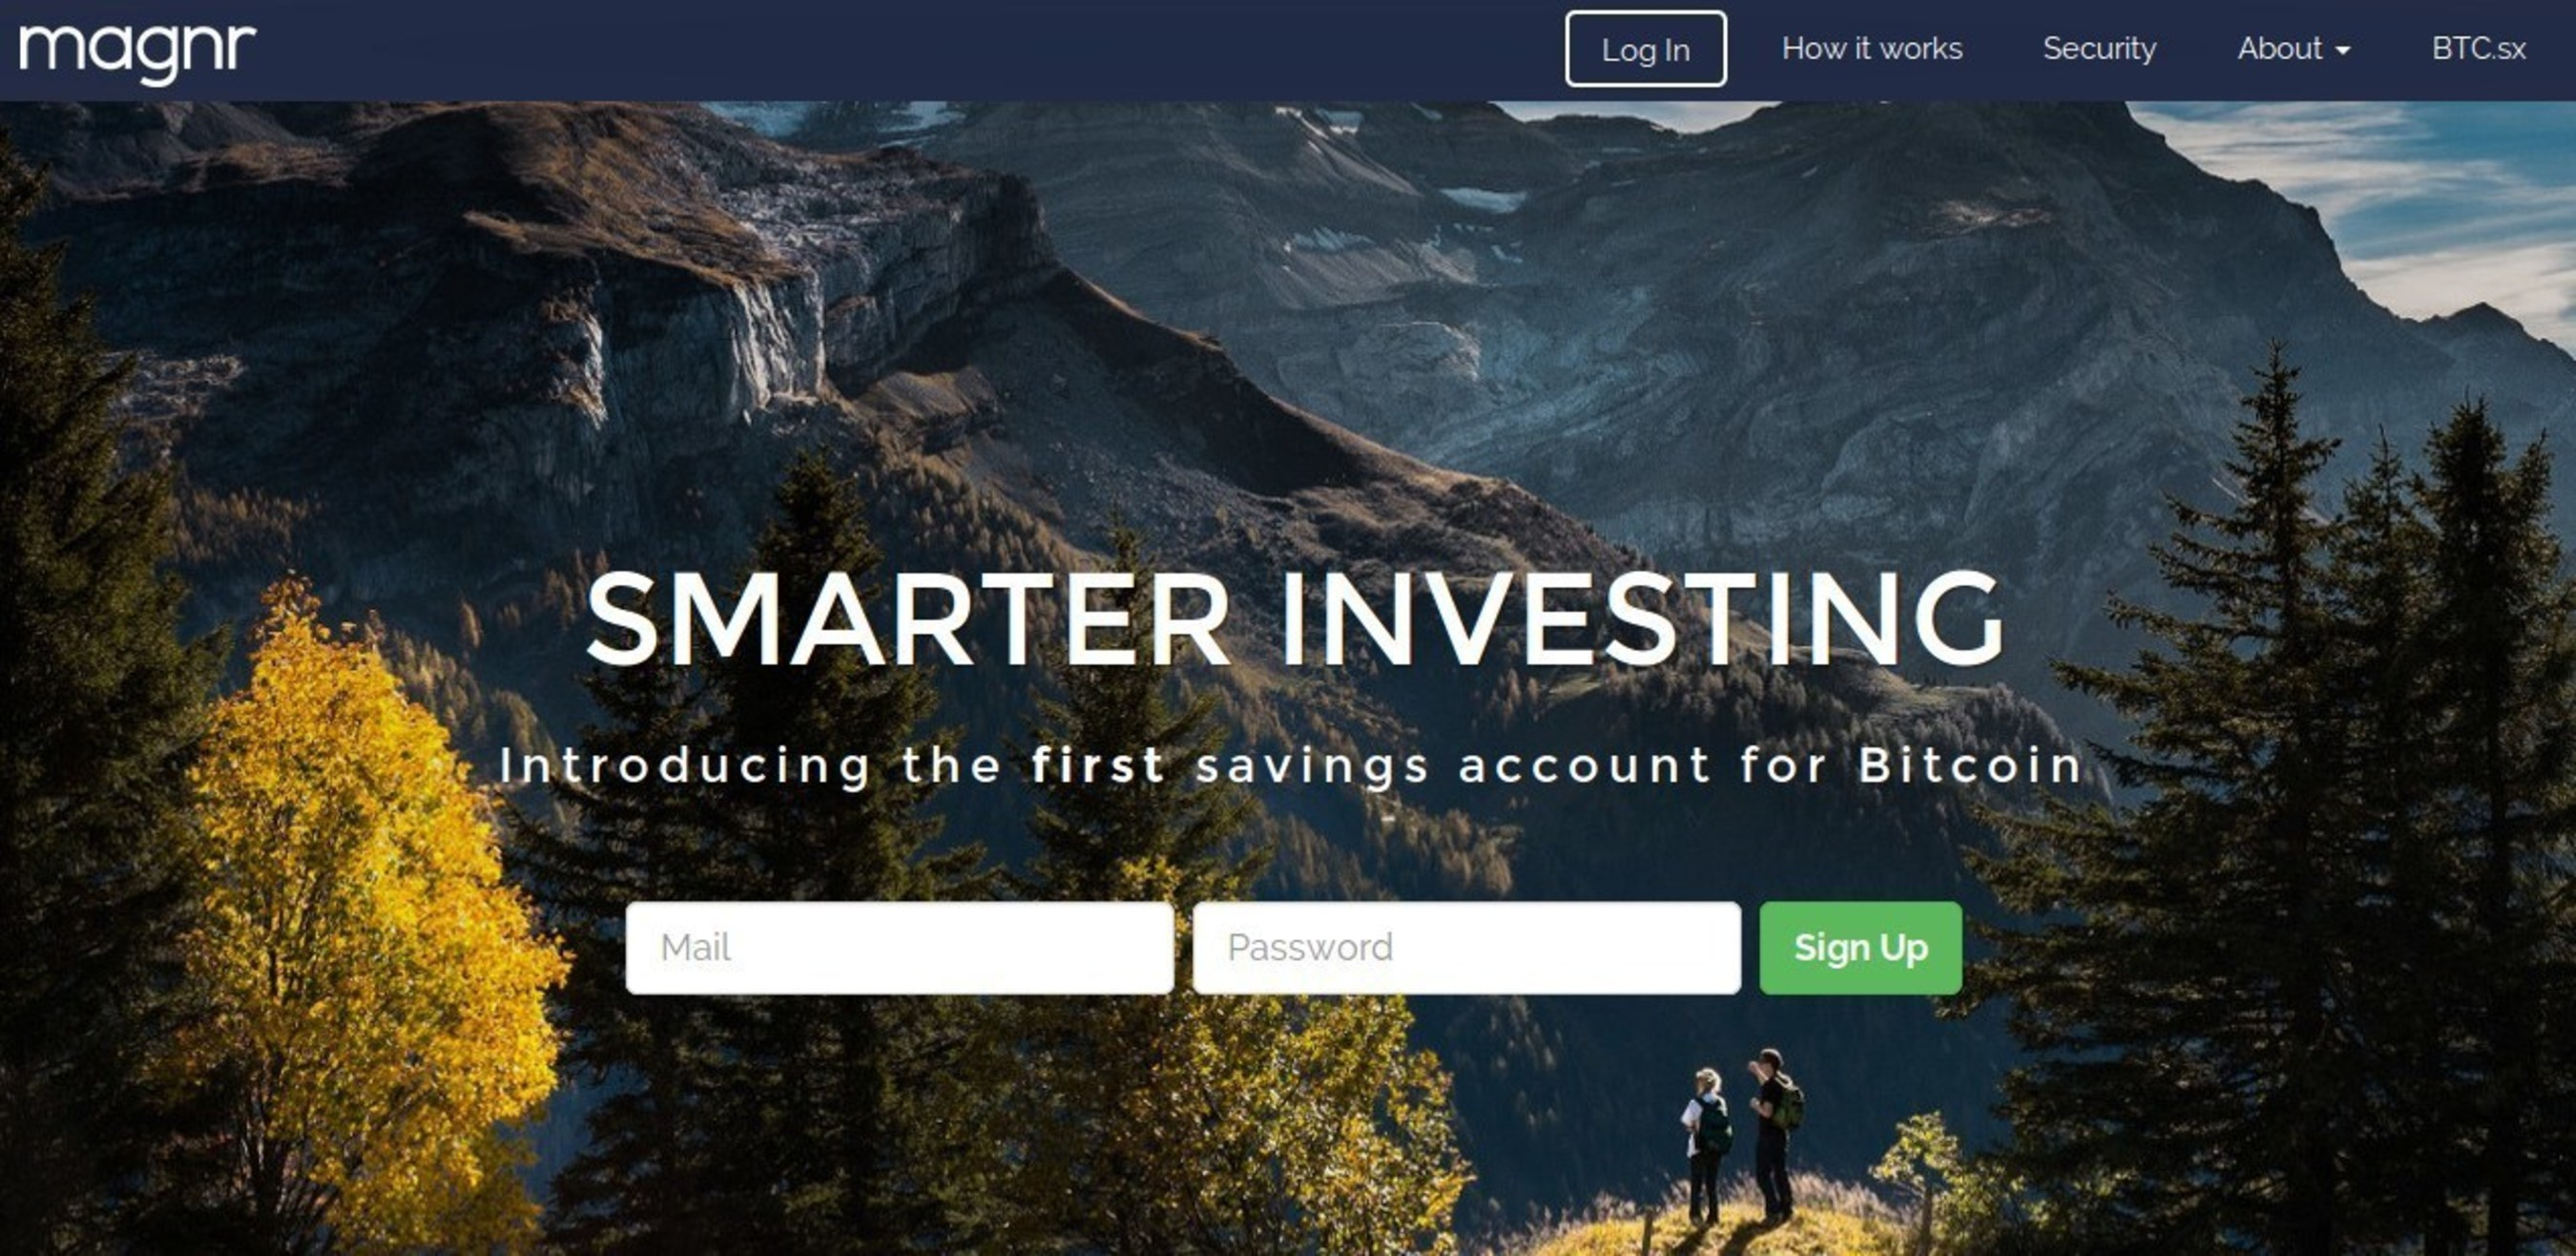 Magnr Launches World's First Blockchain Based Bitcoin Savings Accounts - Latest BTC.sx Product